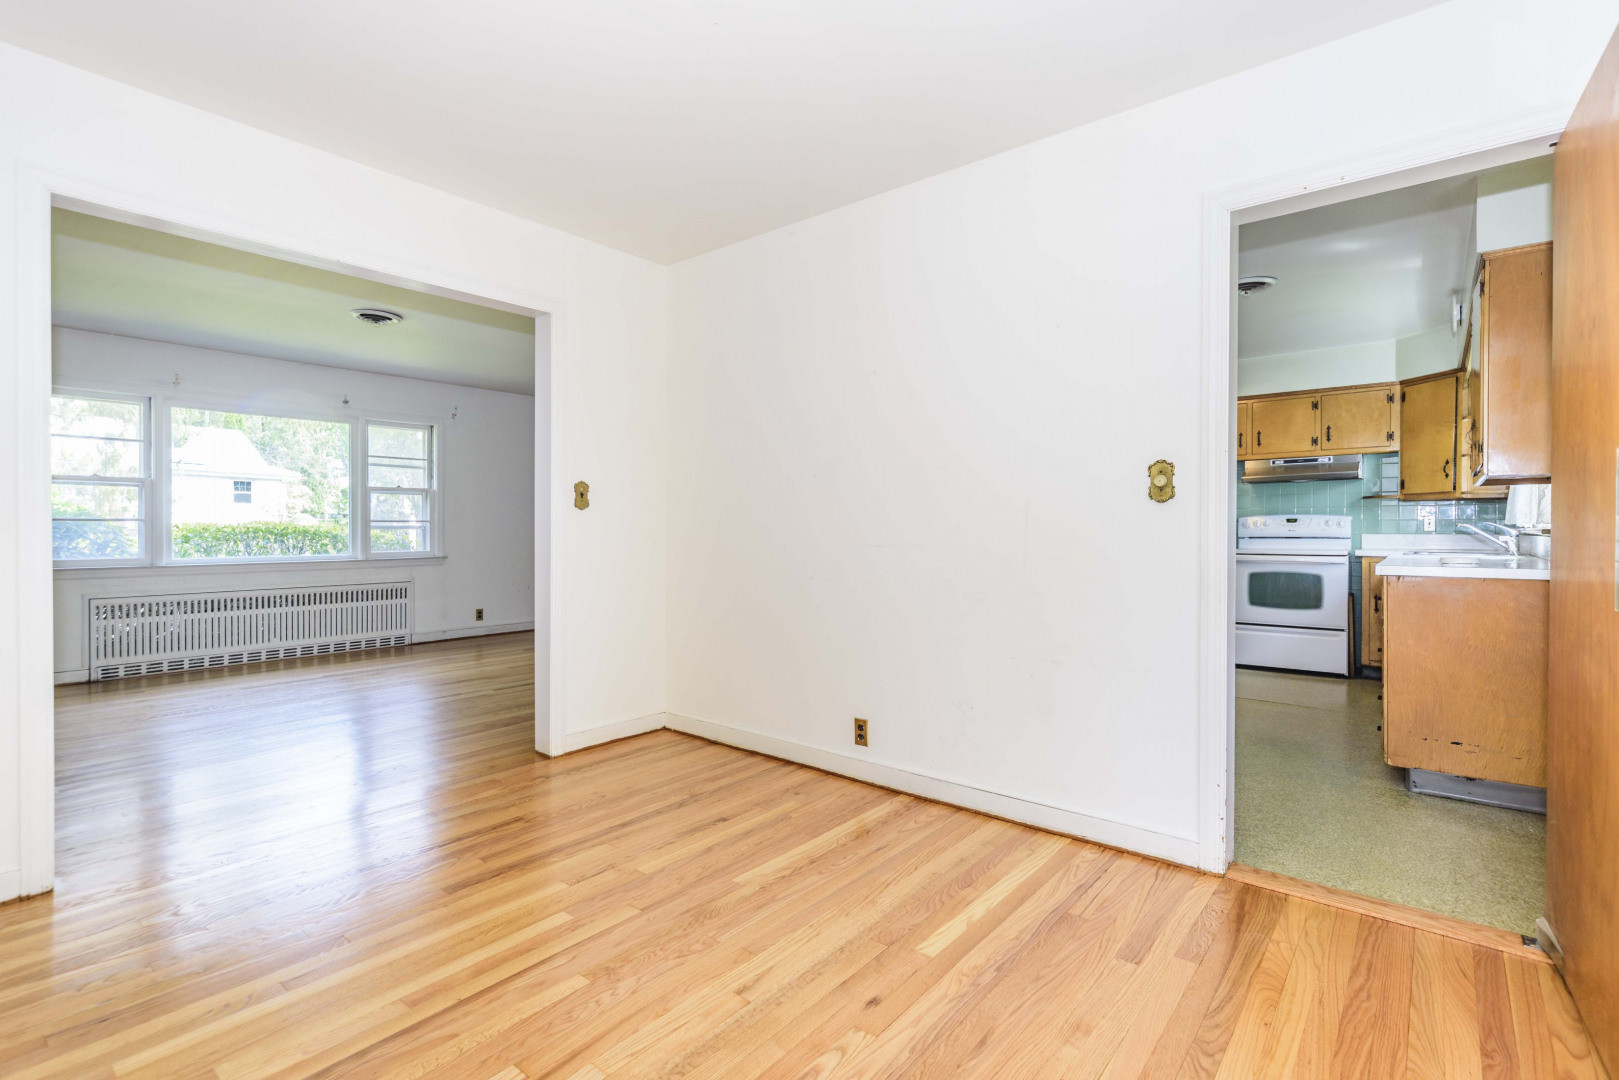 hardwood floor refinishing stratford ct of 6 caldwell avenue stamford ct for sale william pitt sothebys realty for 14868168 8 009 233896 dsc8781 5152640